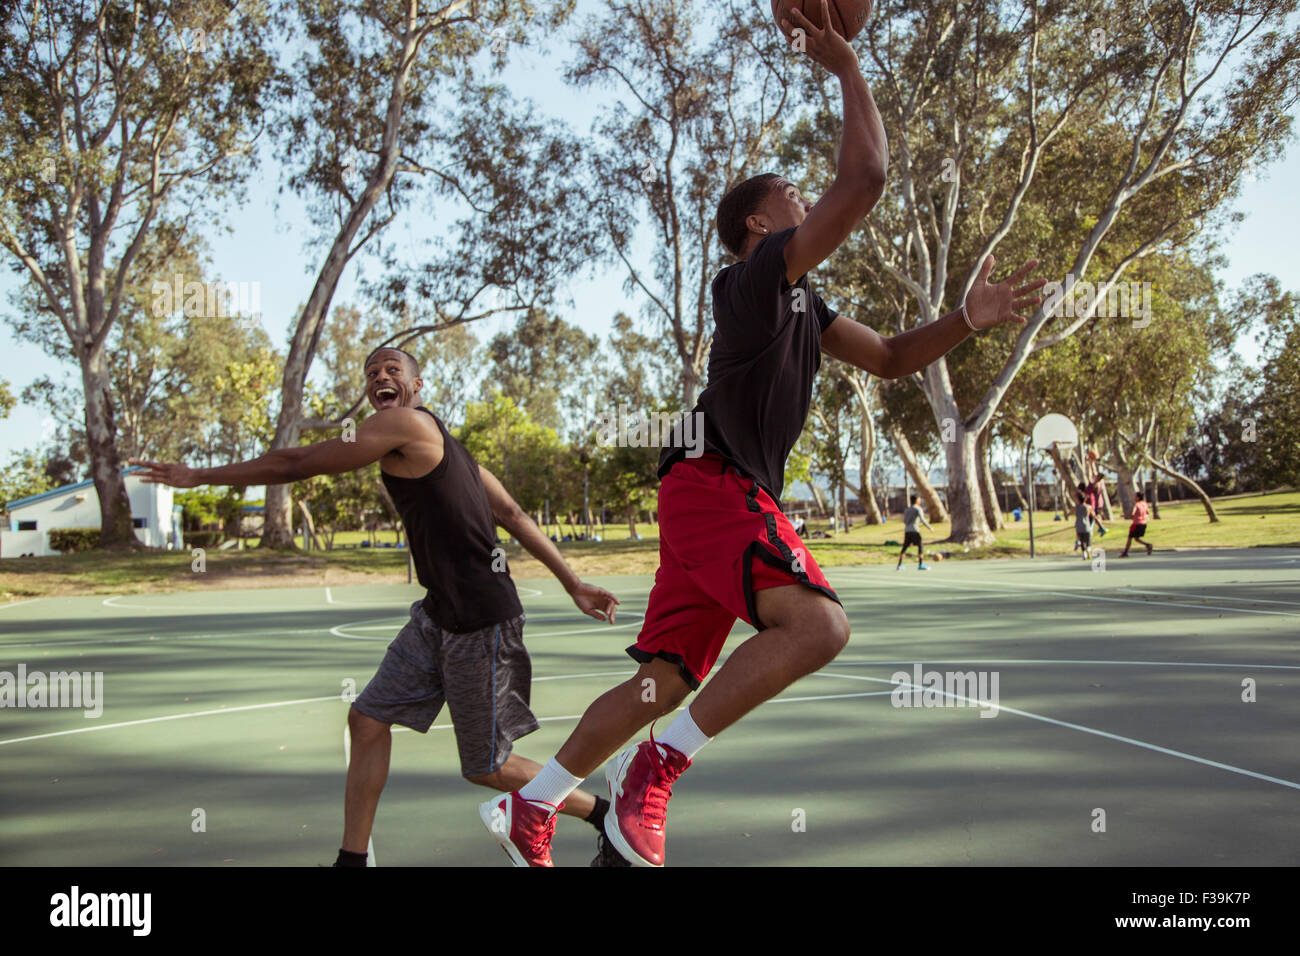 Two young men playing basketball, shooting hoops in the park at sunset Stock Photo